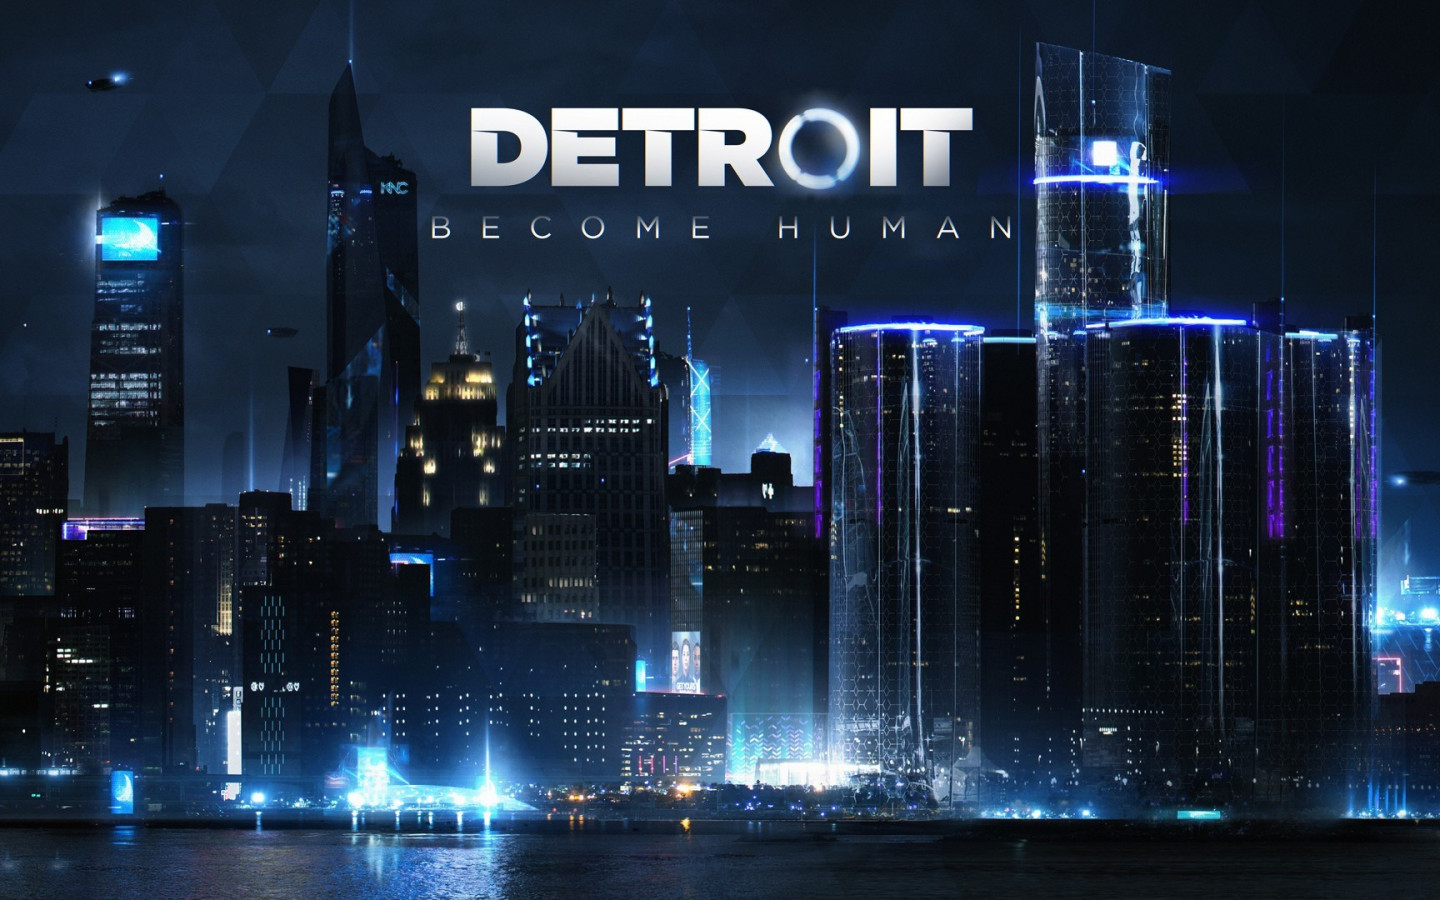 Detroit Become Human wallpaper 1440x900